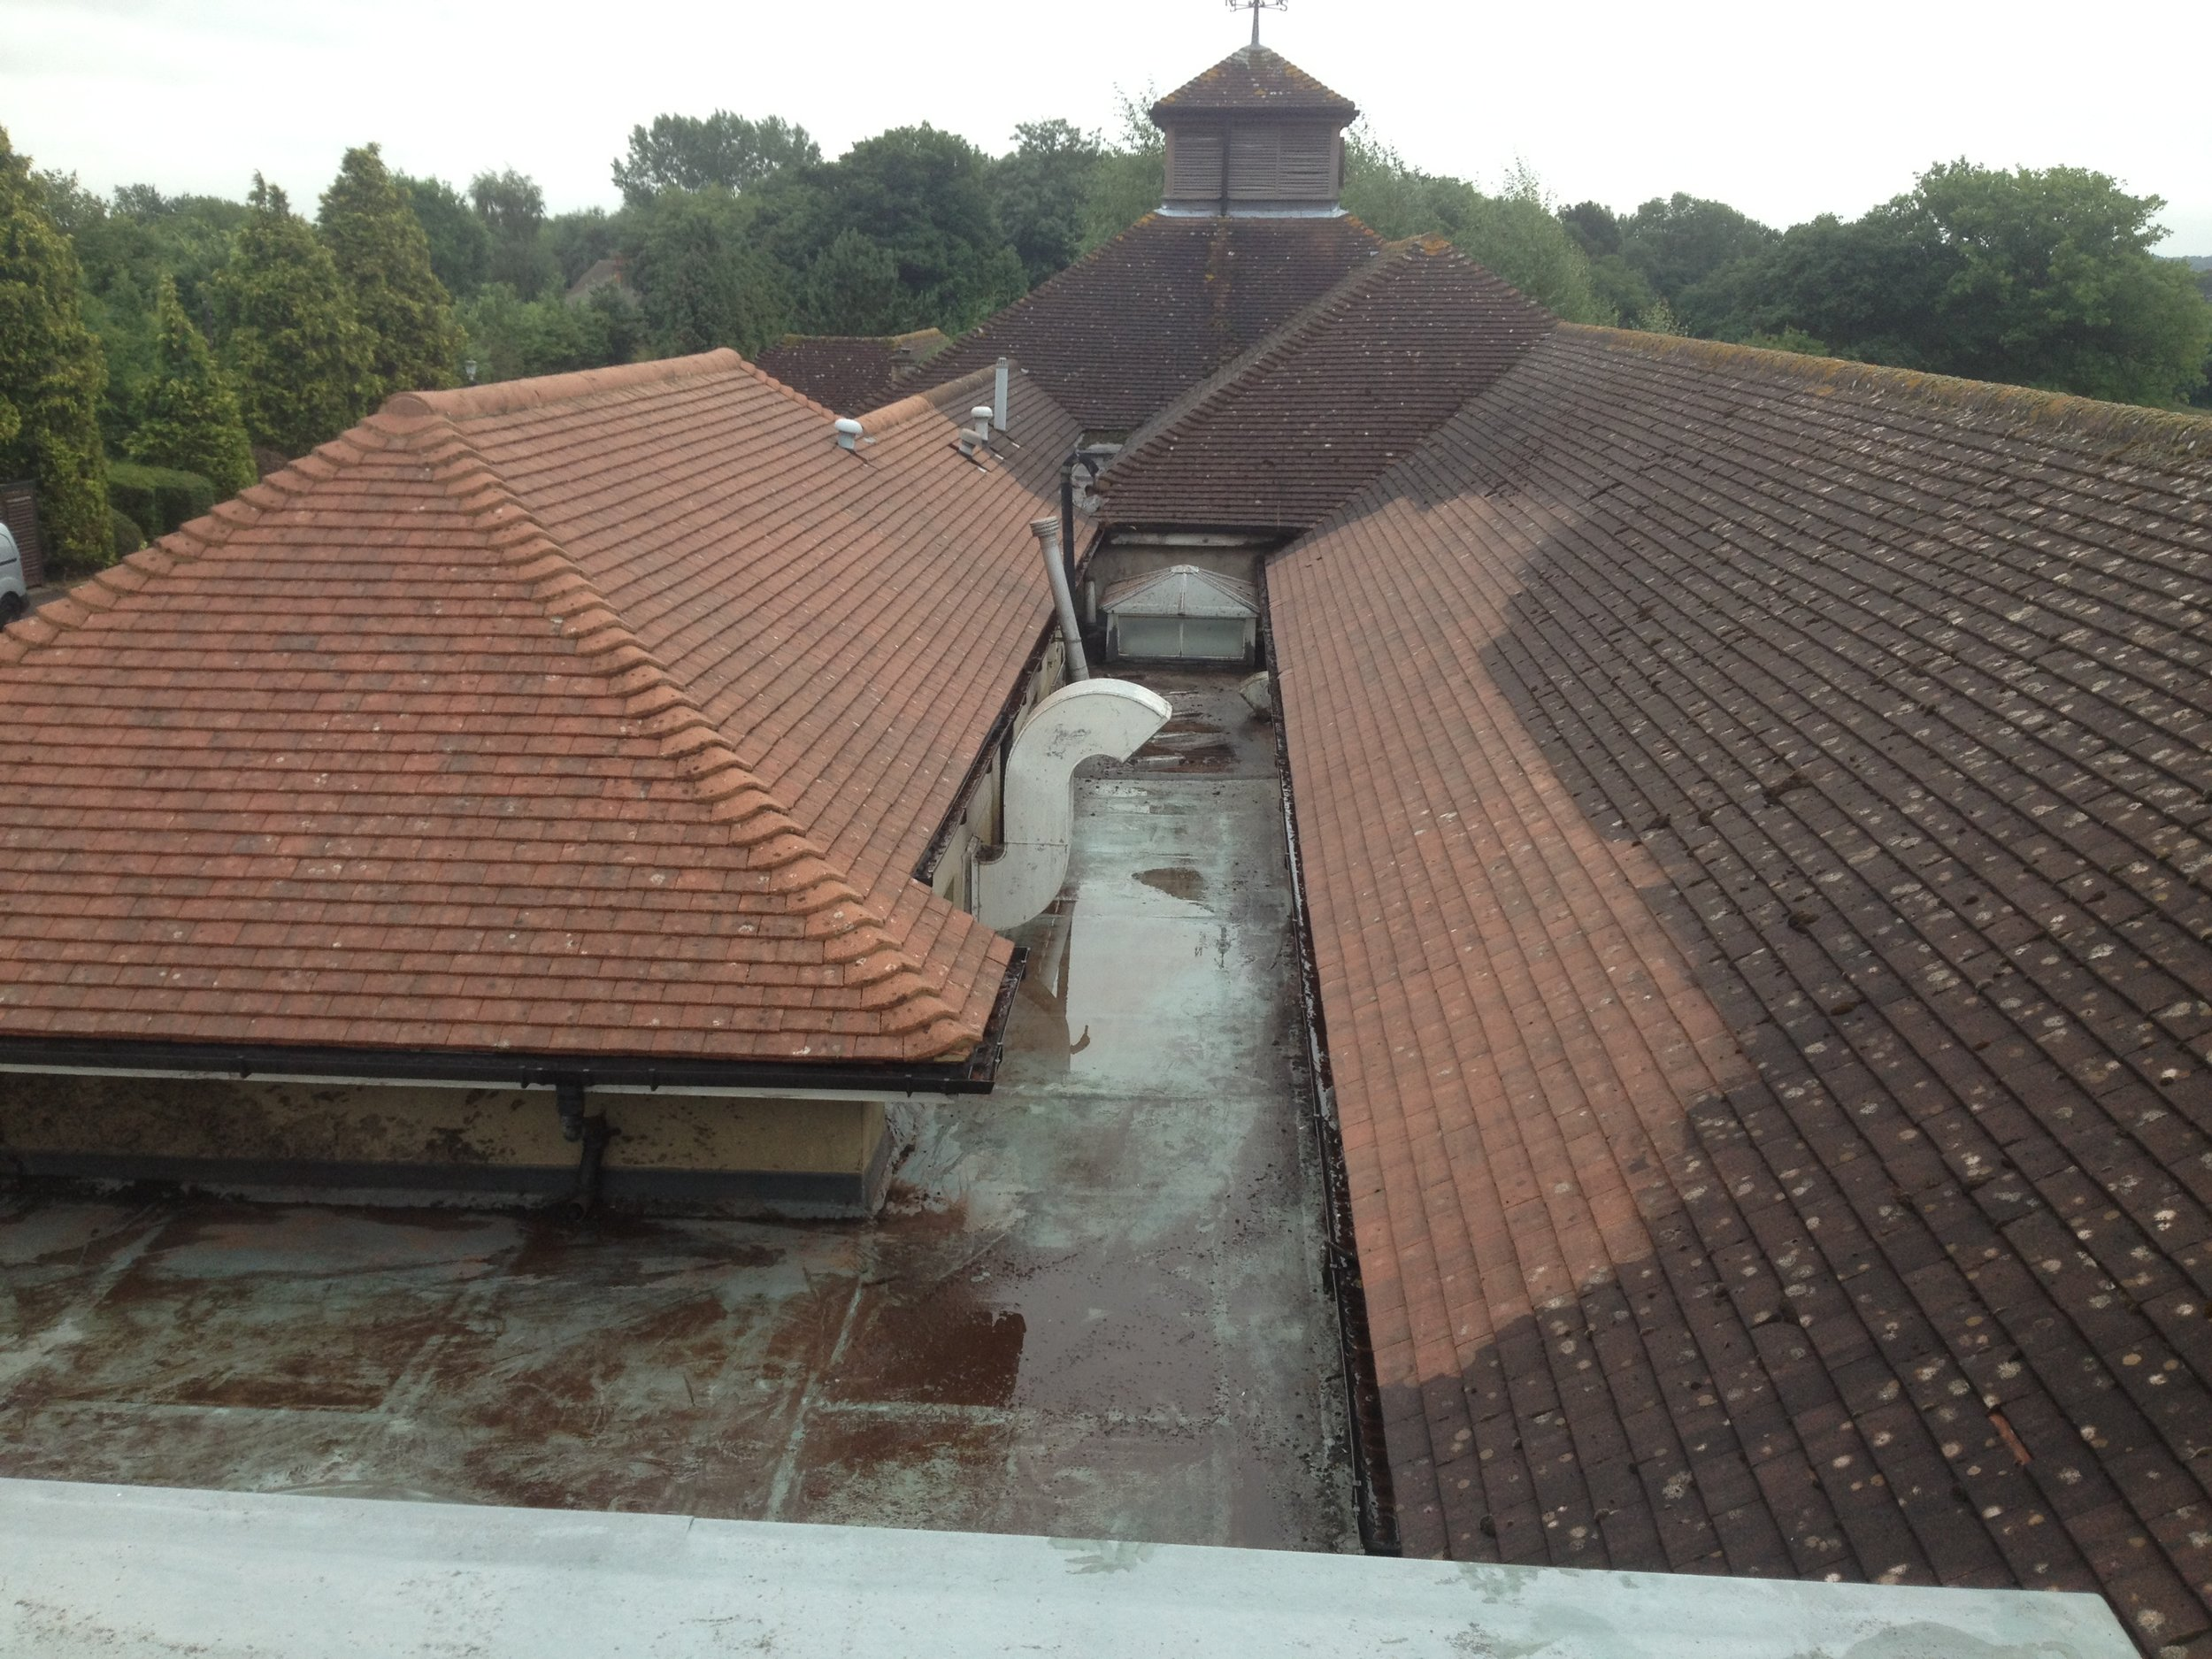 Roof Restoration / Cleaning - We specialize in removing moss, dirt and algae from any type of roof. So please contact us and we will provide you with a FREE site visit and written quotation.